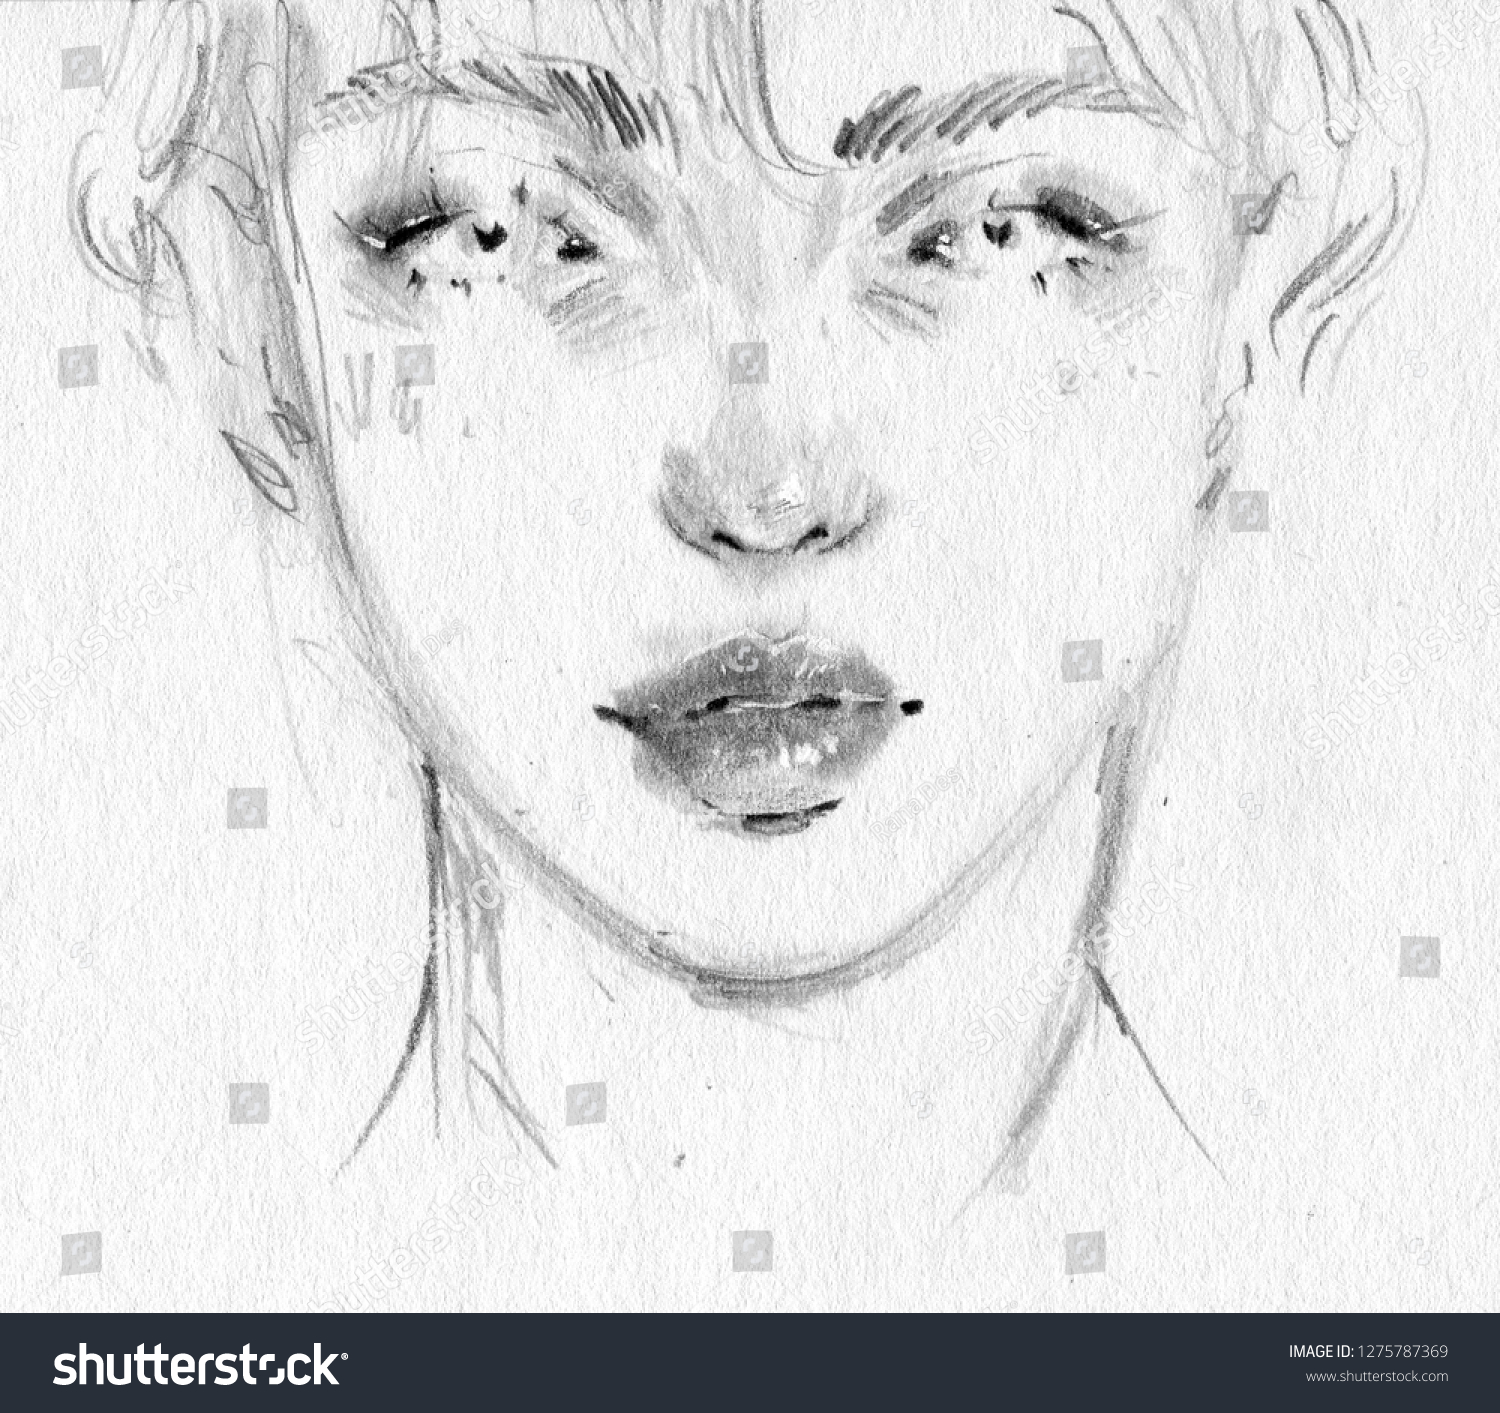 Asian guy face black and white pencil drawing sketch on paper abstract korean boy with beautiful eyes art portrait